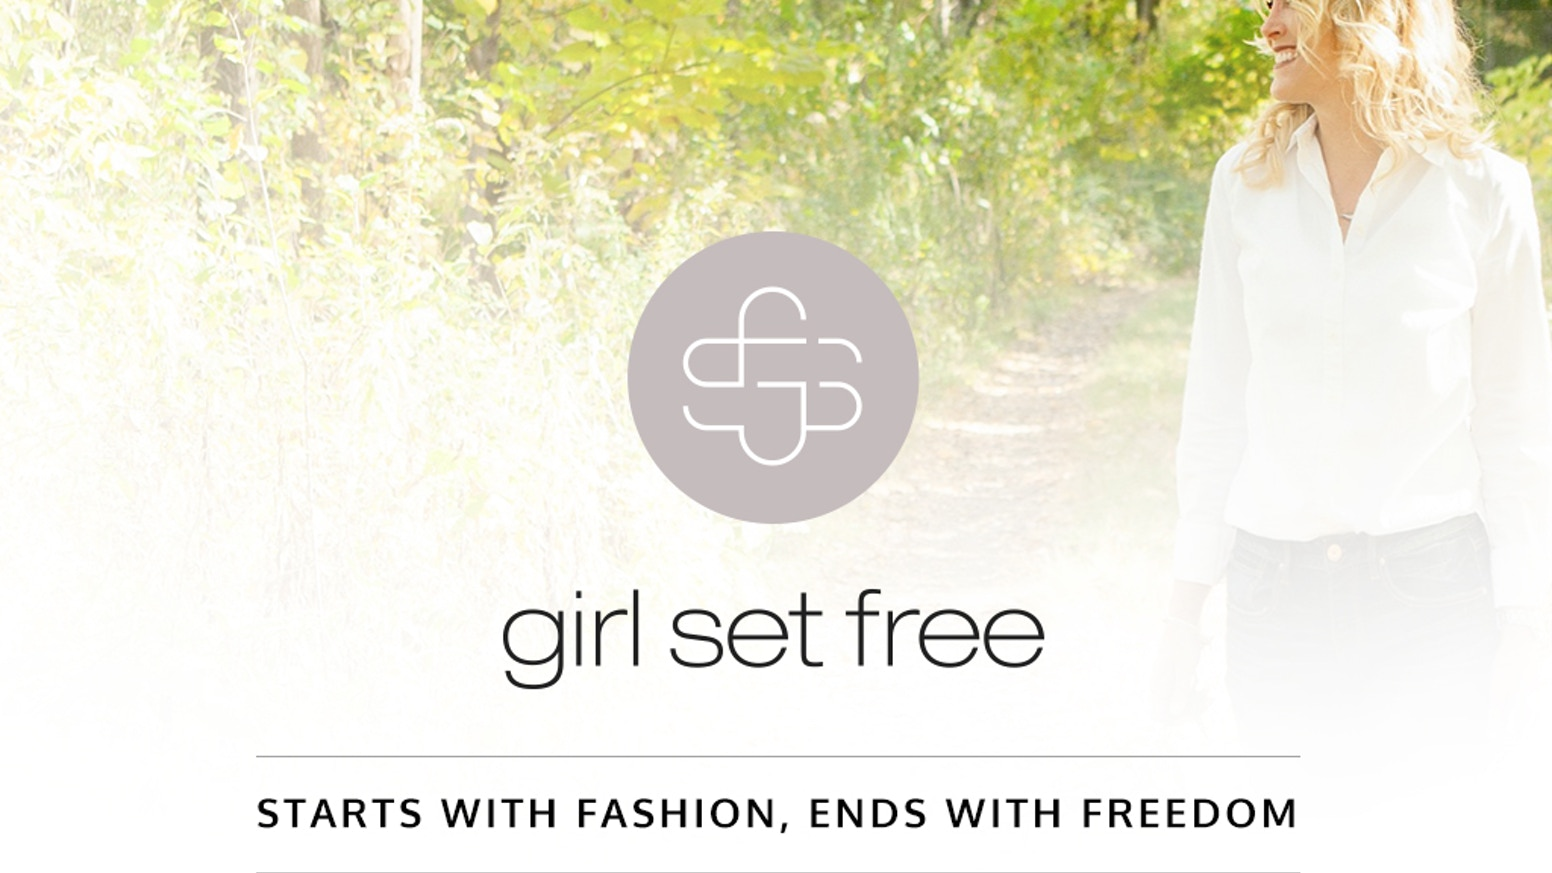 Thank you to all our backers for supportingGirl Set Free! Just finding us, we would love if you would journey with us. We are an ethical fashion brand developing artisan businesses through fair trade to empower survivors of injustice.